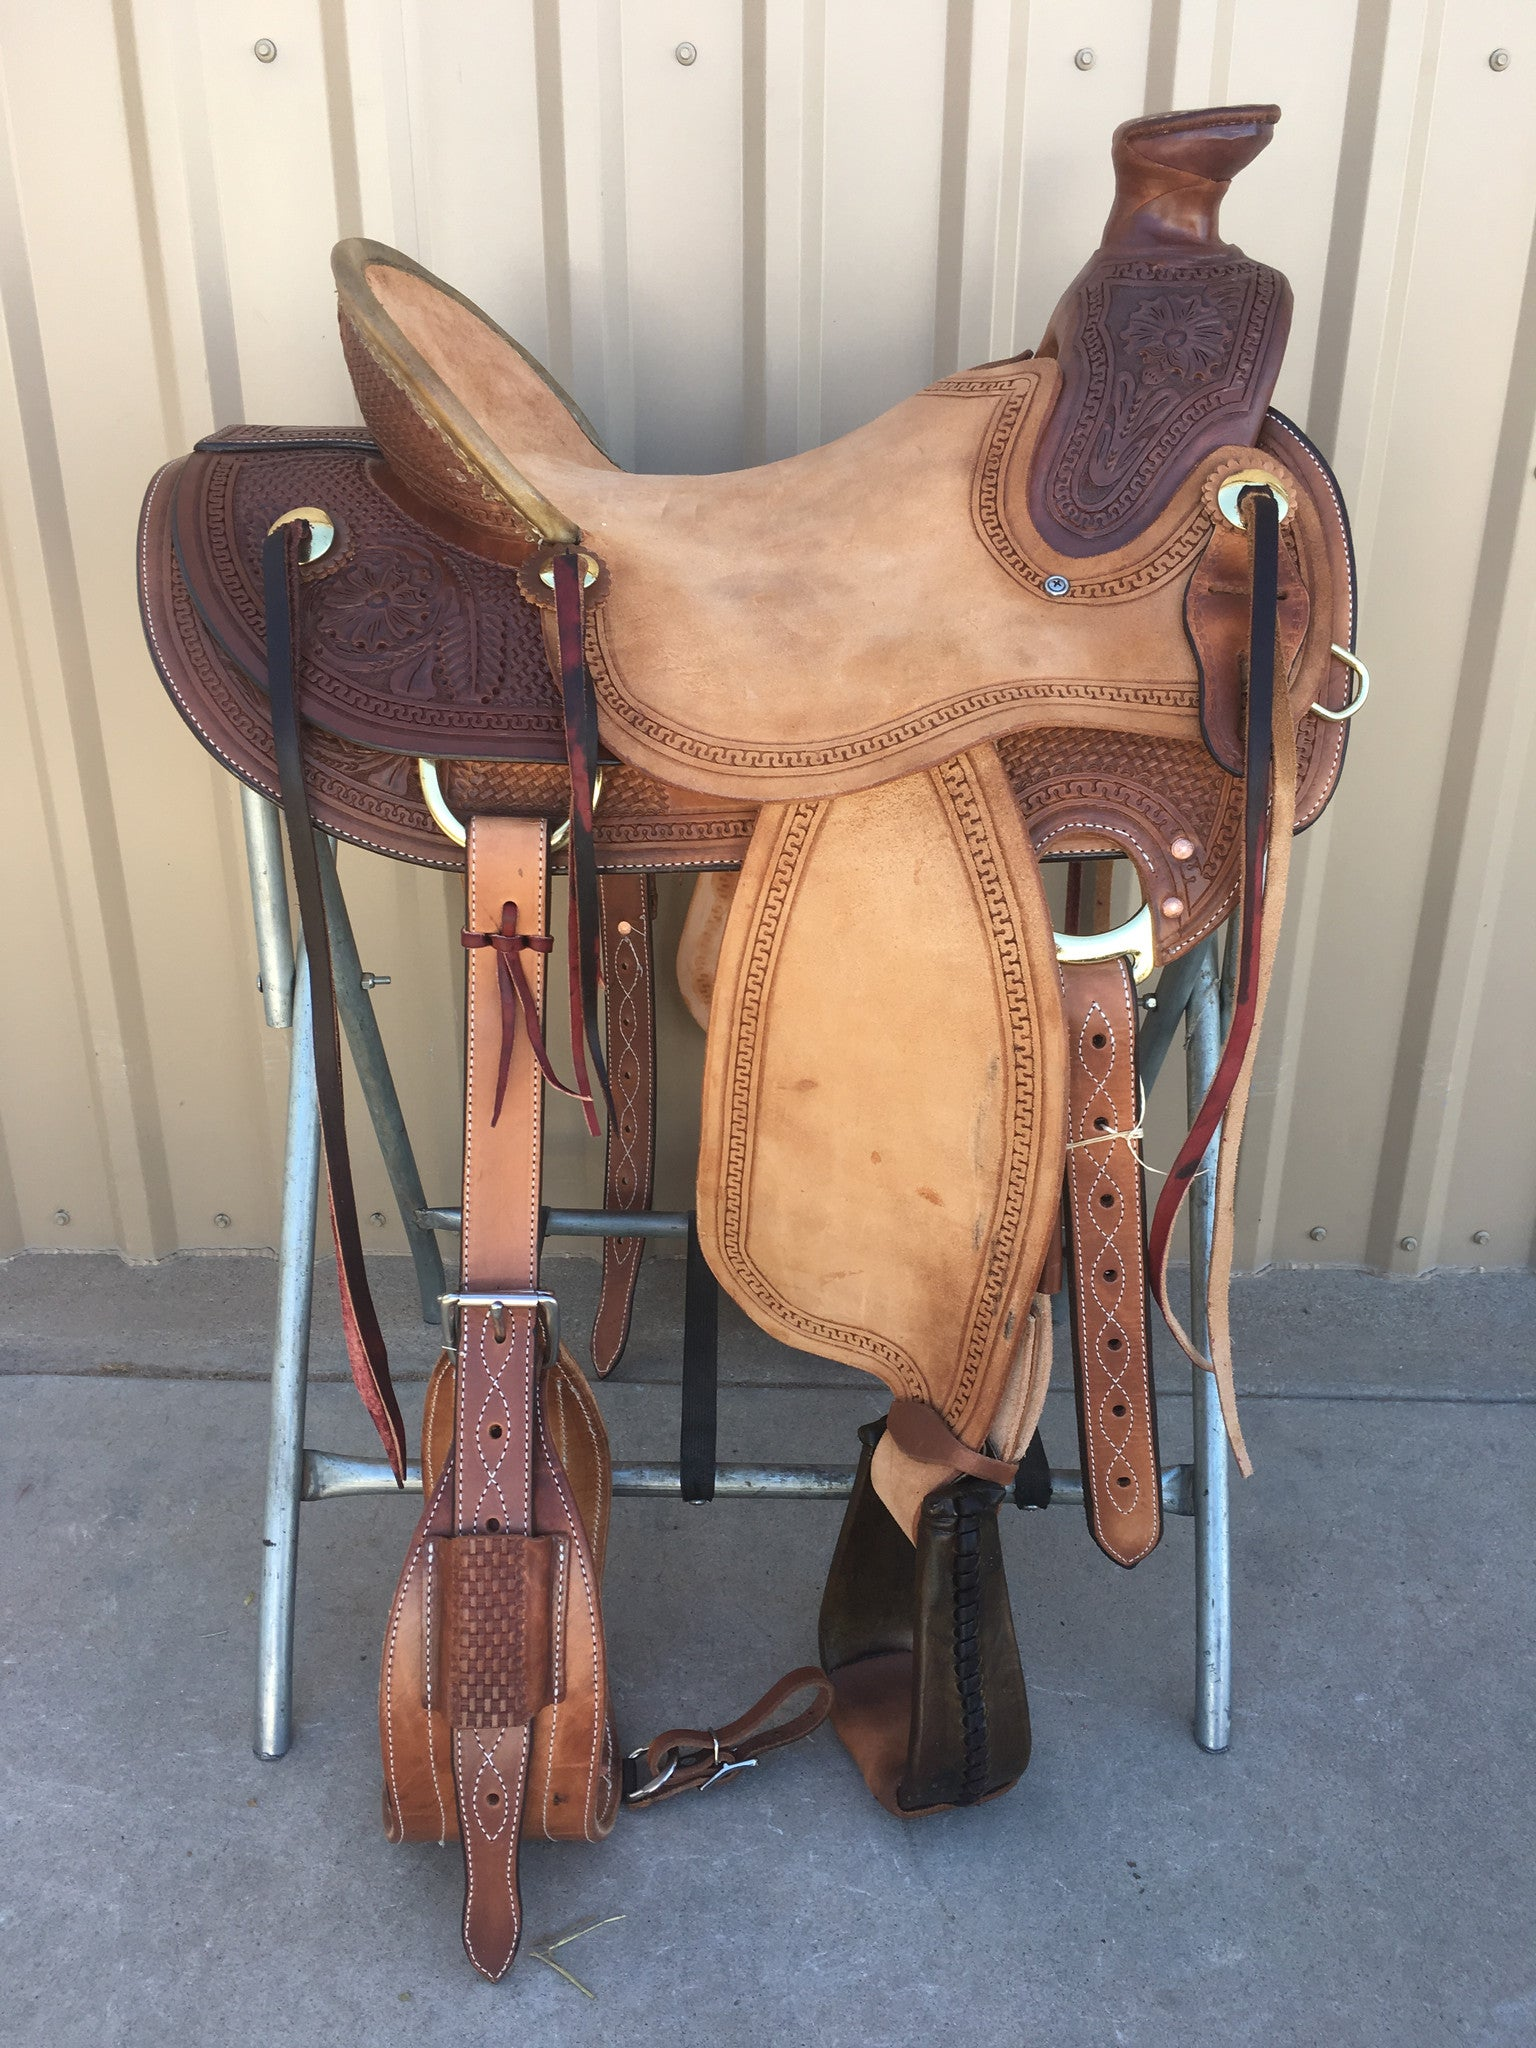 Corriente Ranch Wade A-Fork Saddle SB408A - The Sale Barn - 1